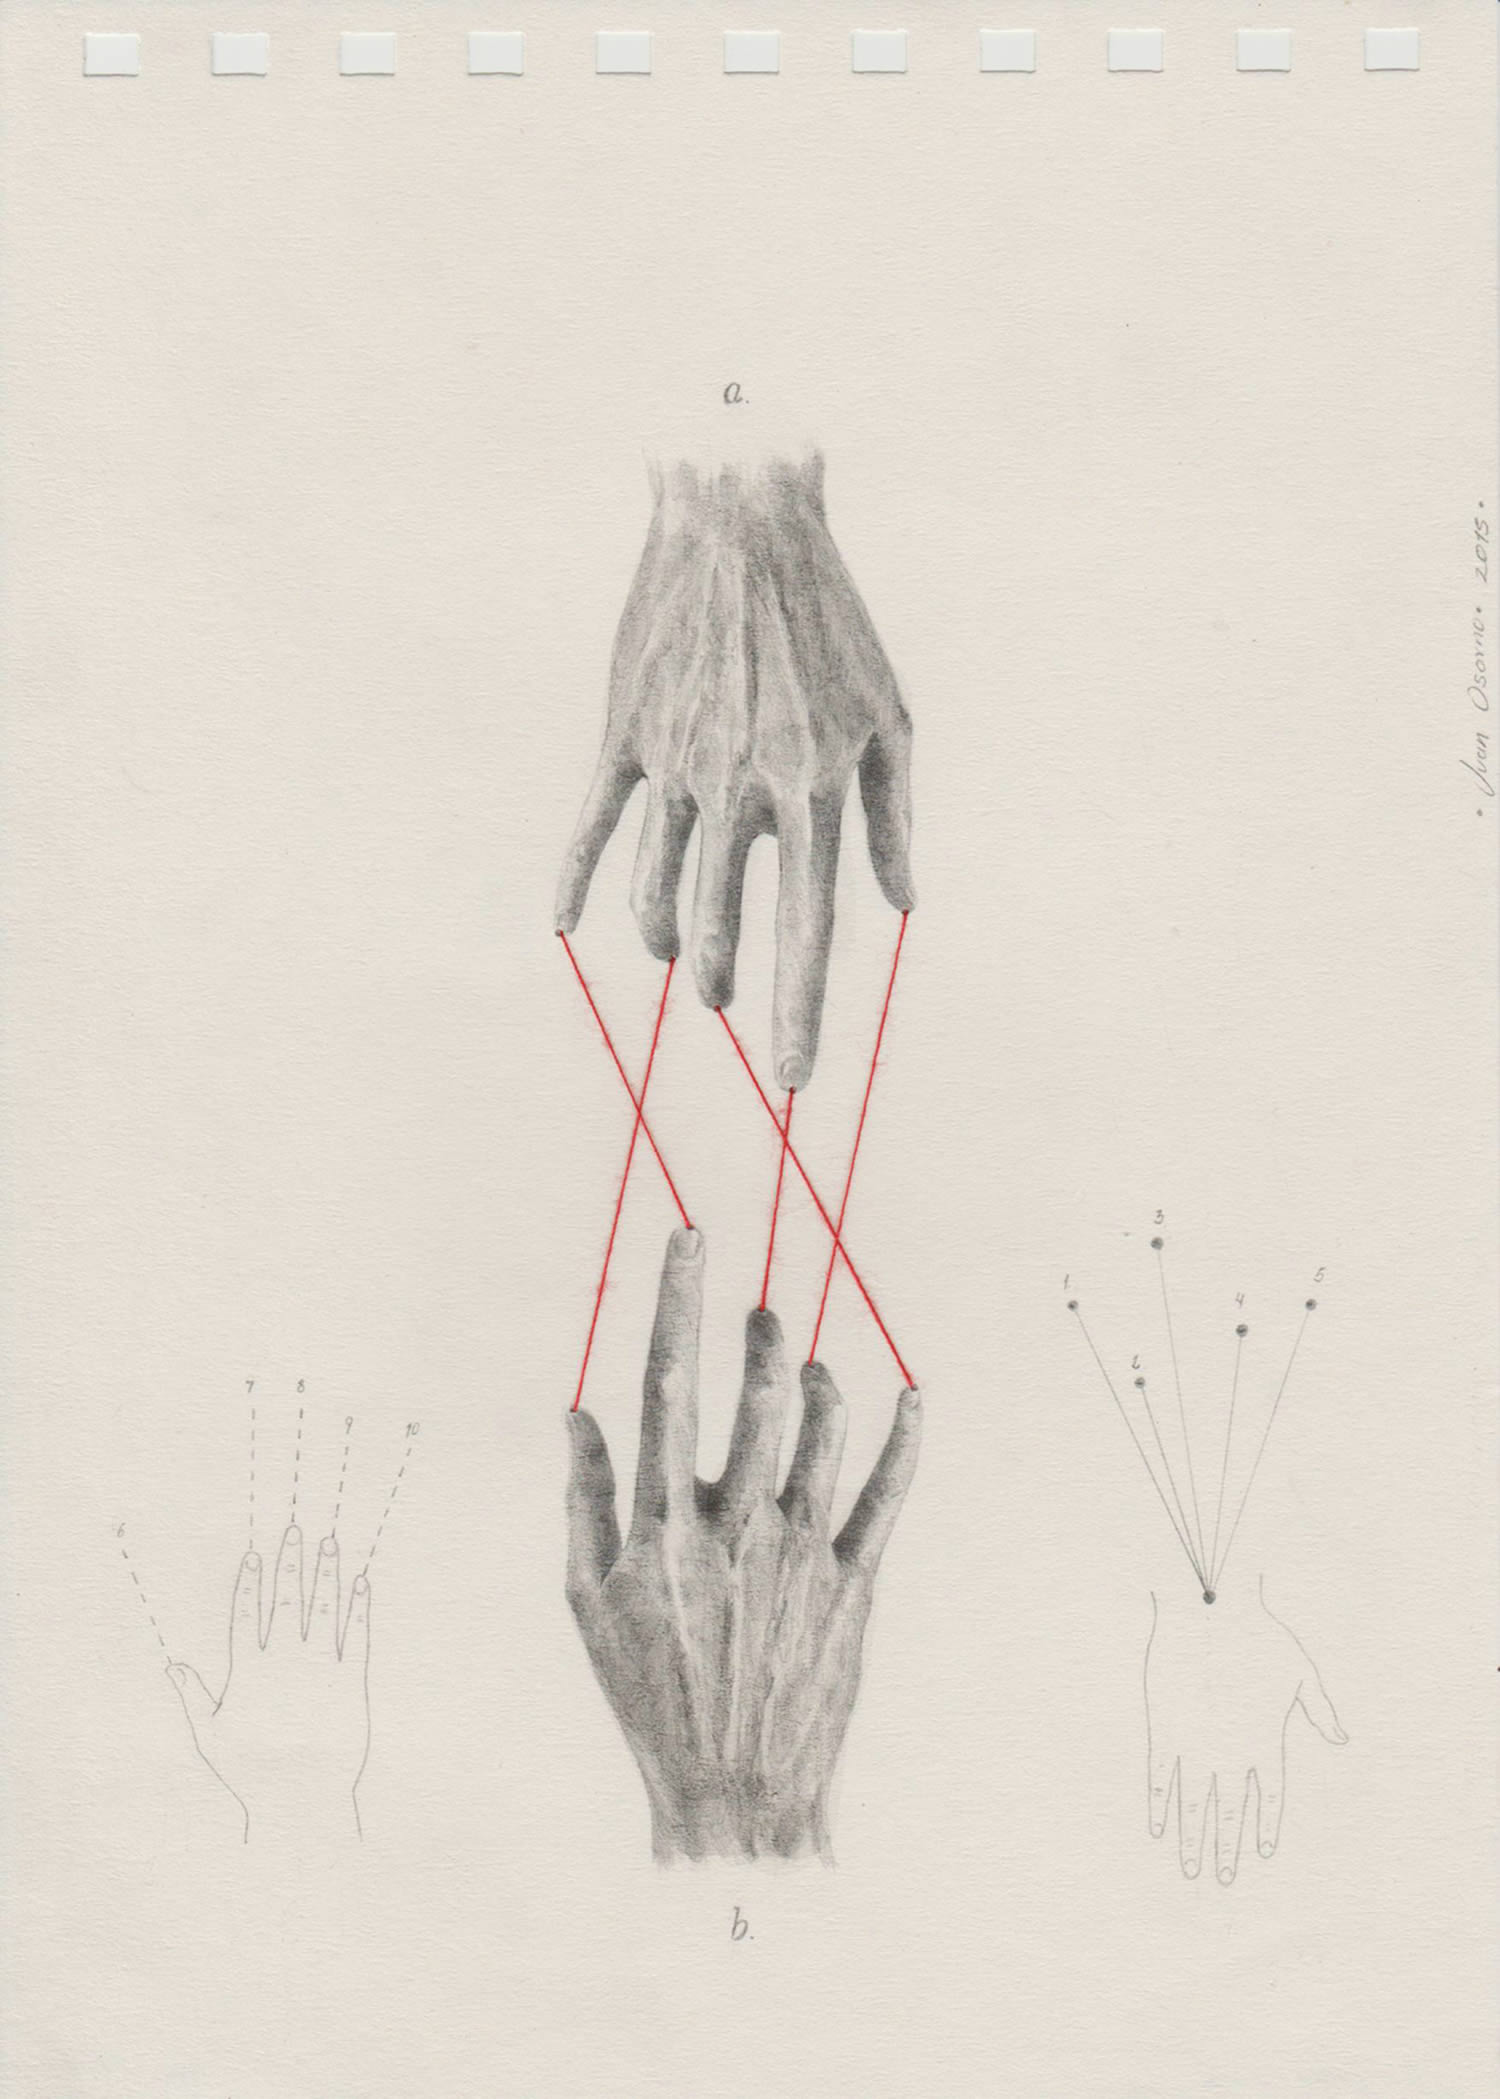 yarn lines connecting to hands, drawing